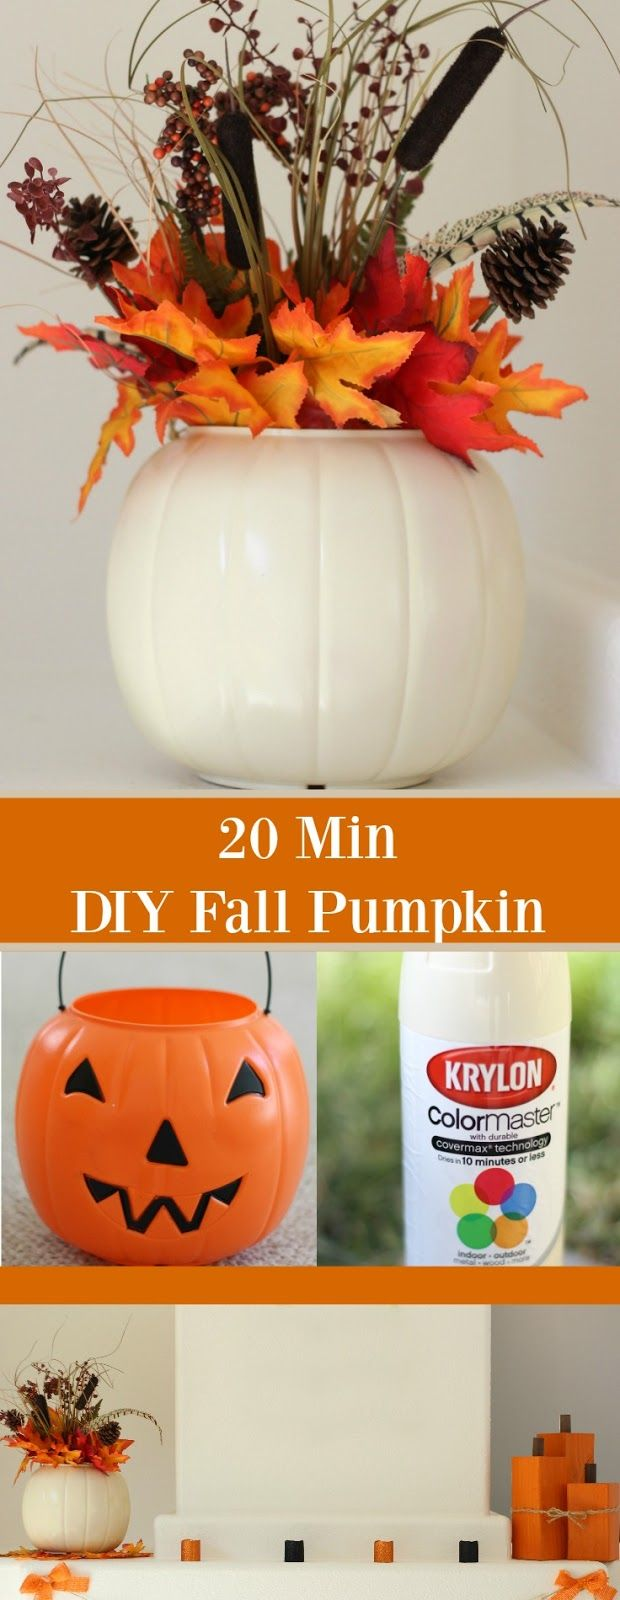 Imagenes De Easy Fall Crafts To Make And Sell